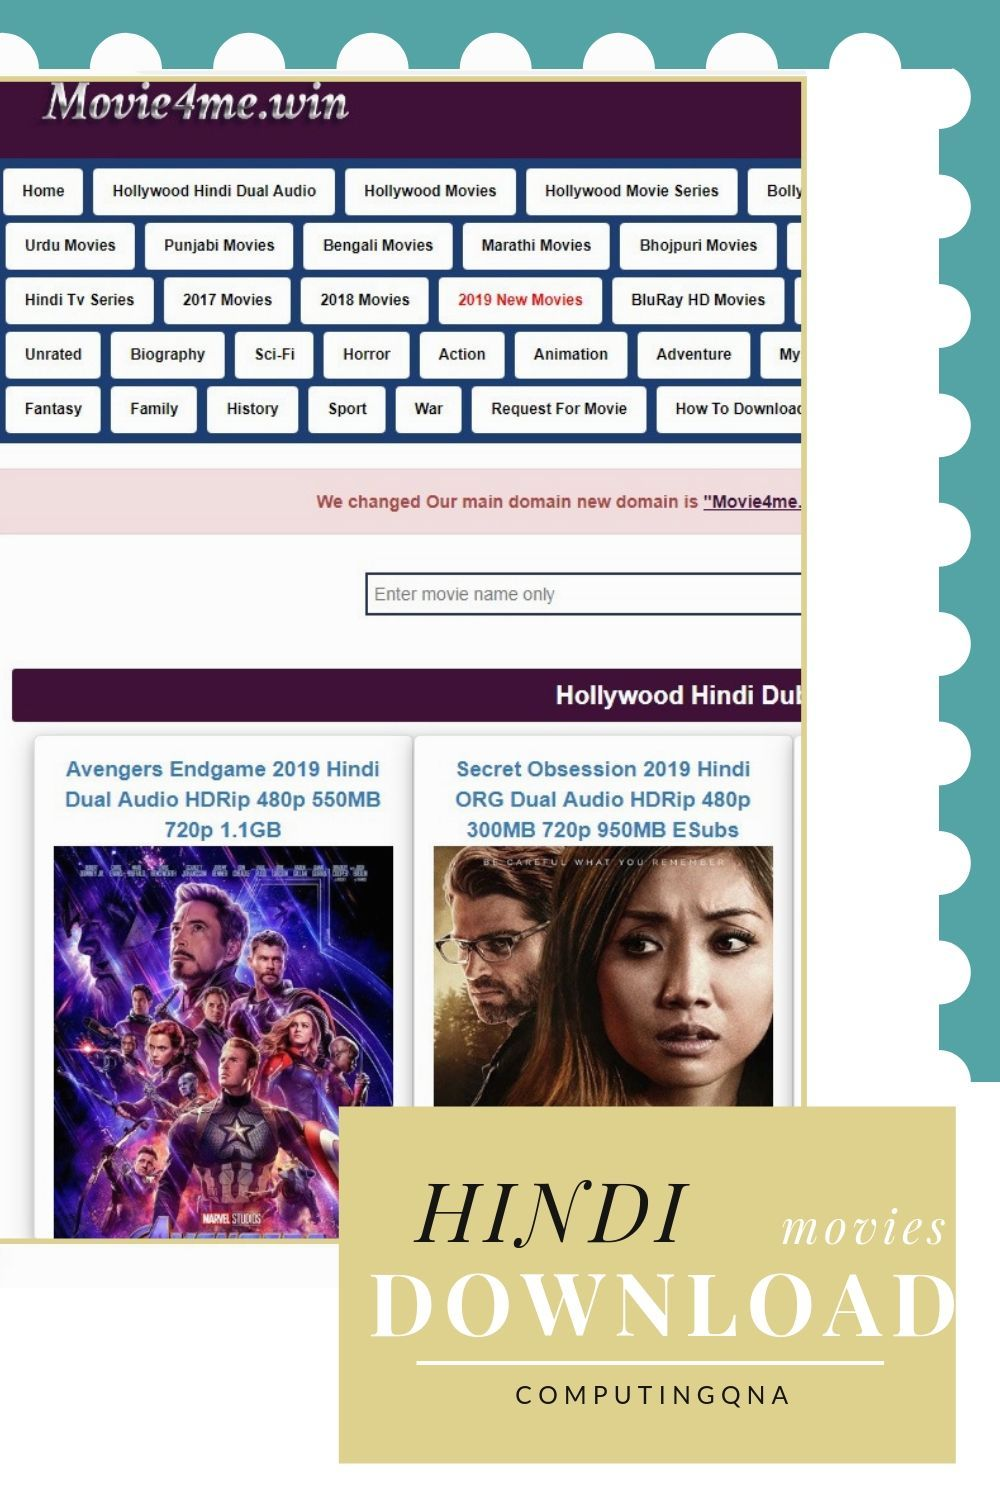 Download latest hollywood bollywood movies in hindi